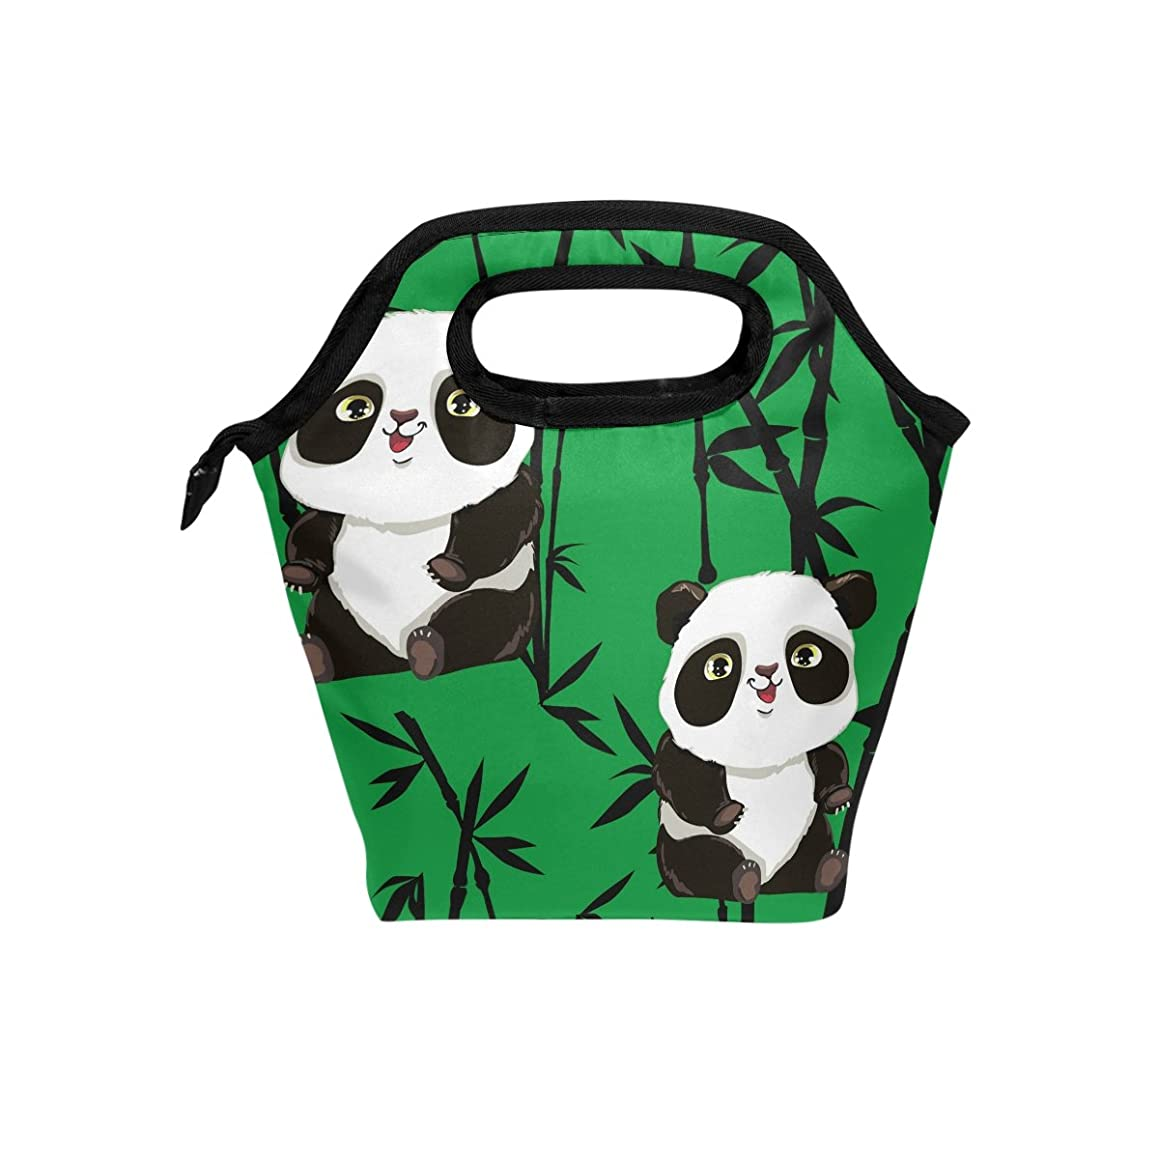 BETTKEN Lunch Bag Cute Animal Panda Bamboo Insulated Reusable Lunch Box Portable Lunch Tote Bag Meal Bag Ice Pack for Boys Girls Adult Women